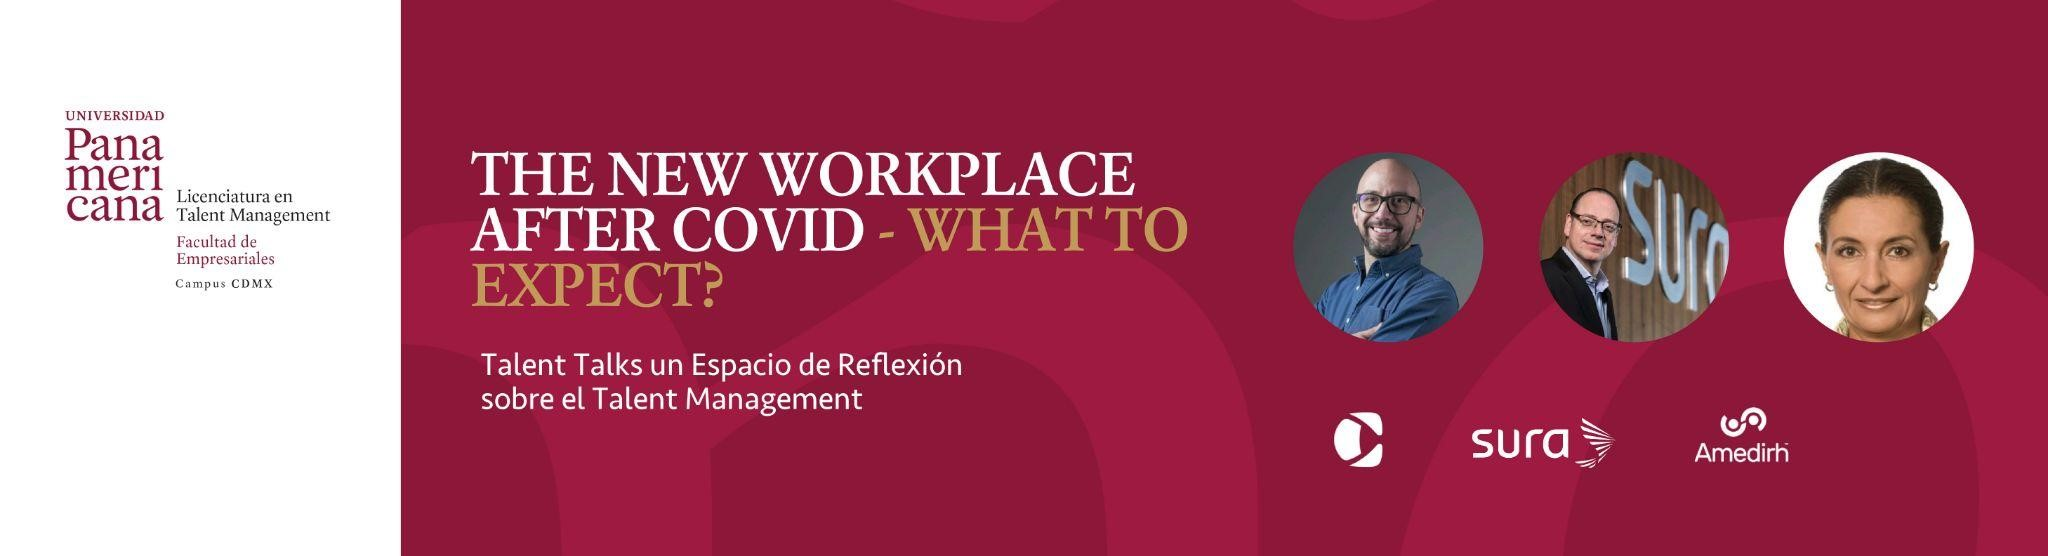 the-new-workplace-after-covid-talent-management